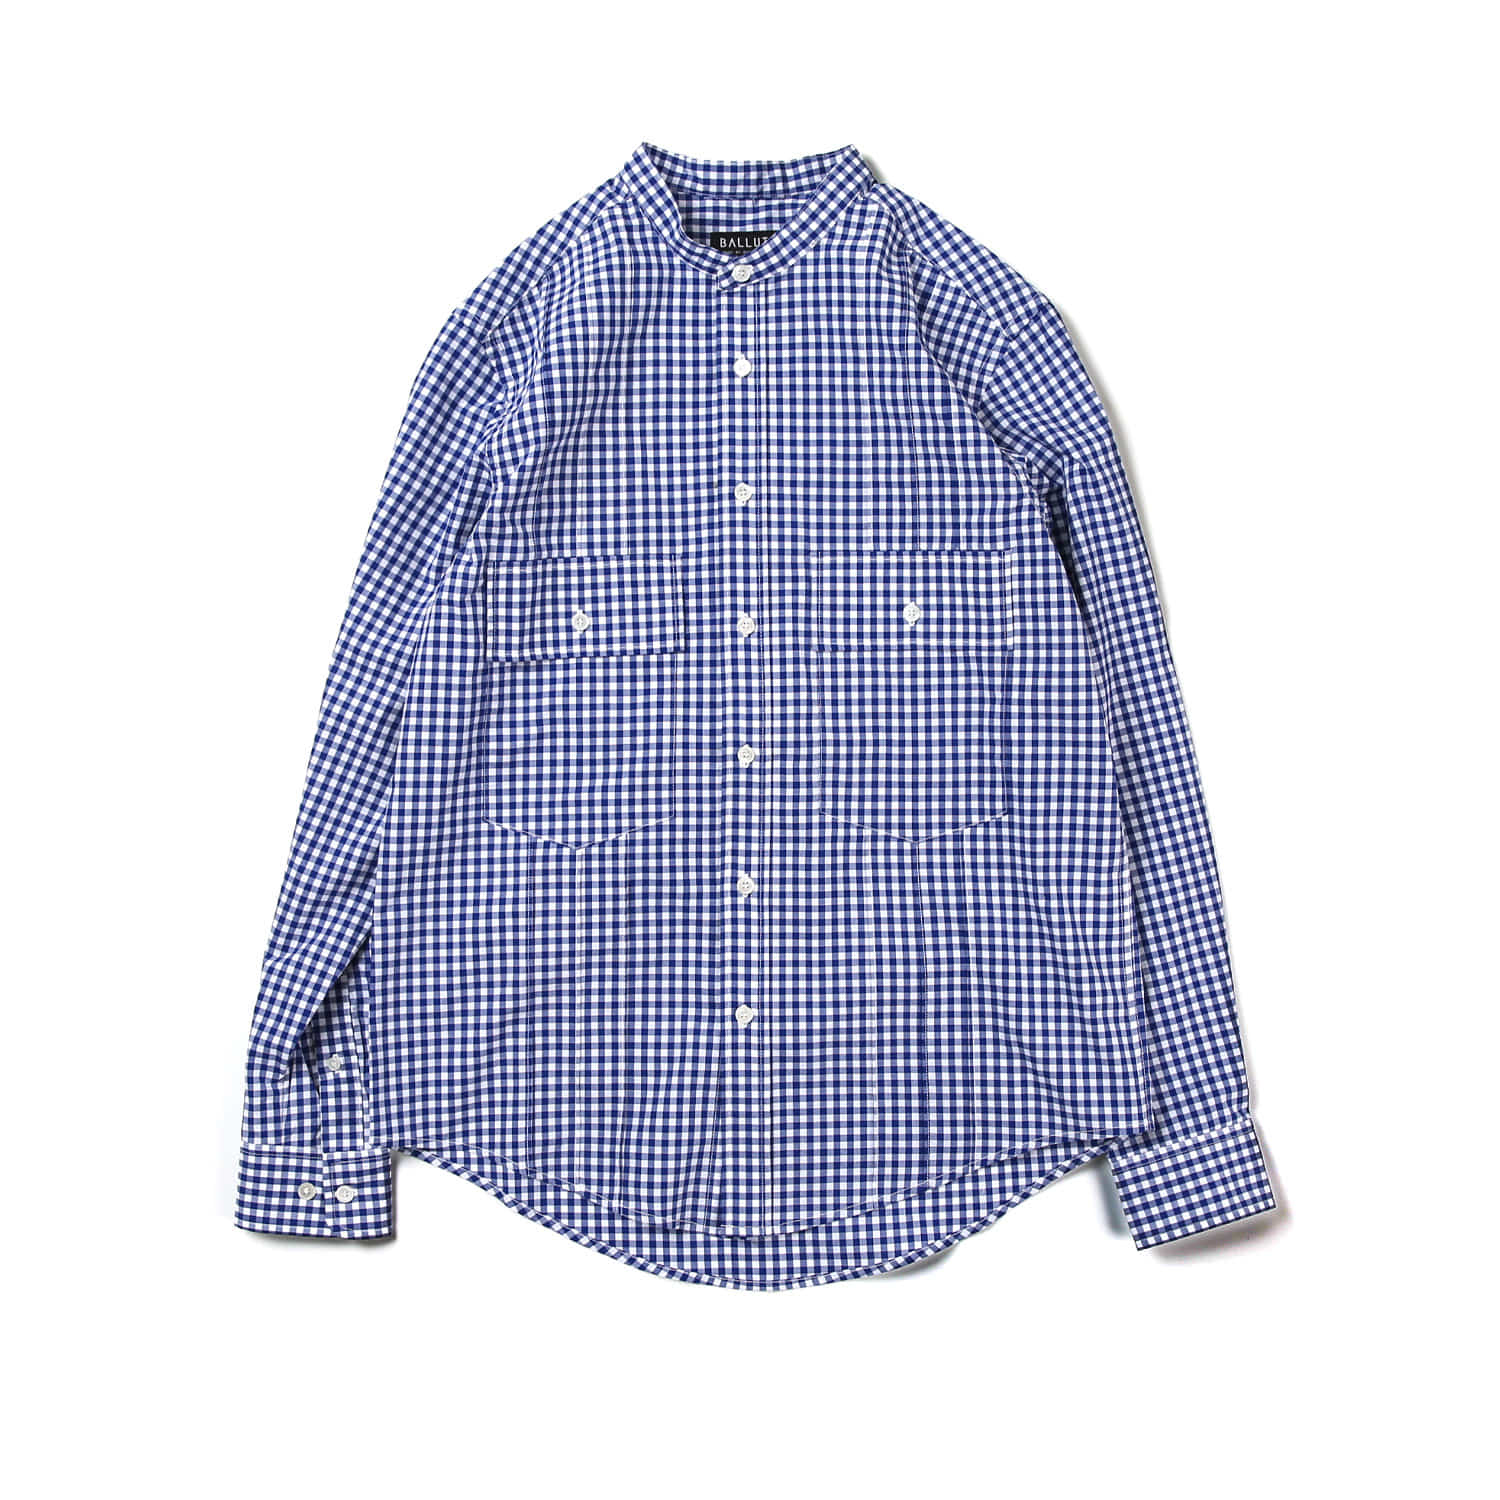 TUXEDO 2 POCKET SHIRT (GINGHAM CHECK)